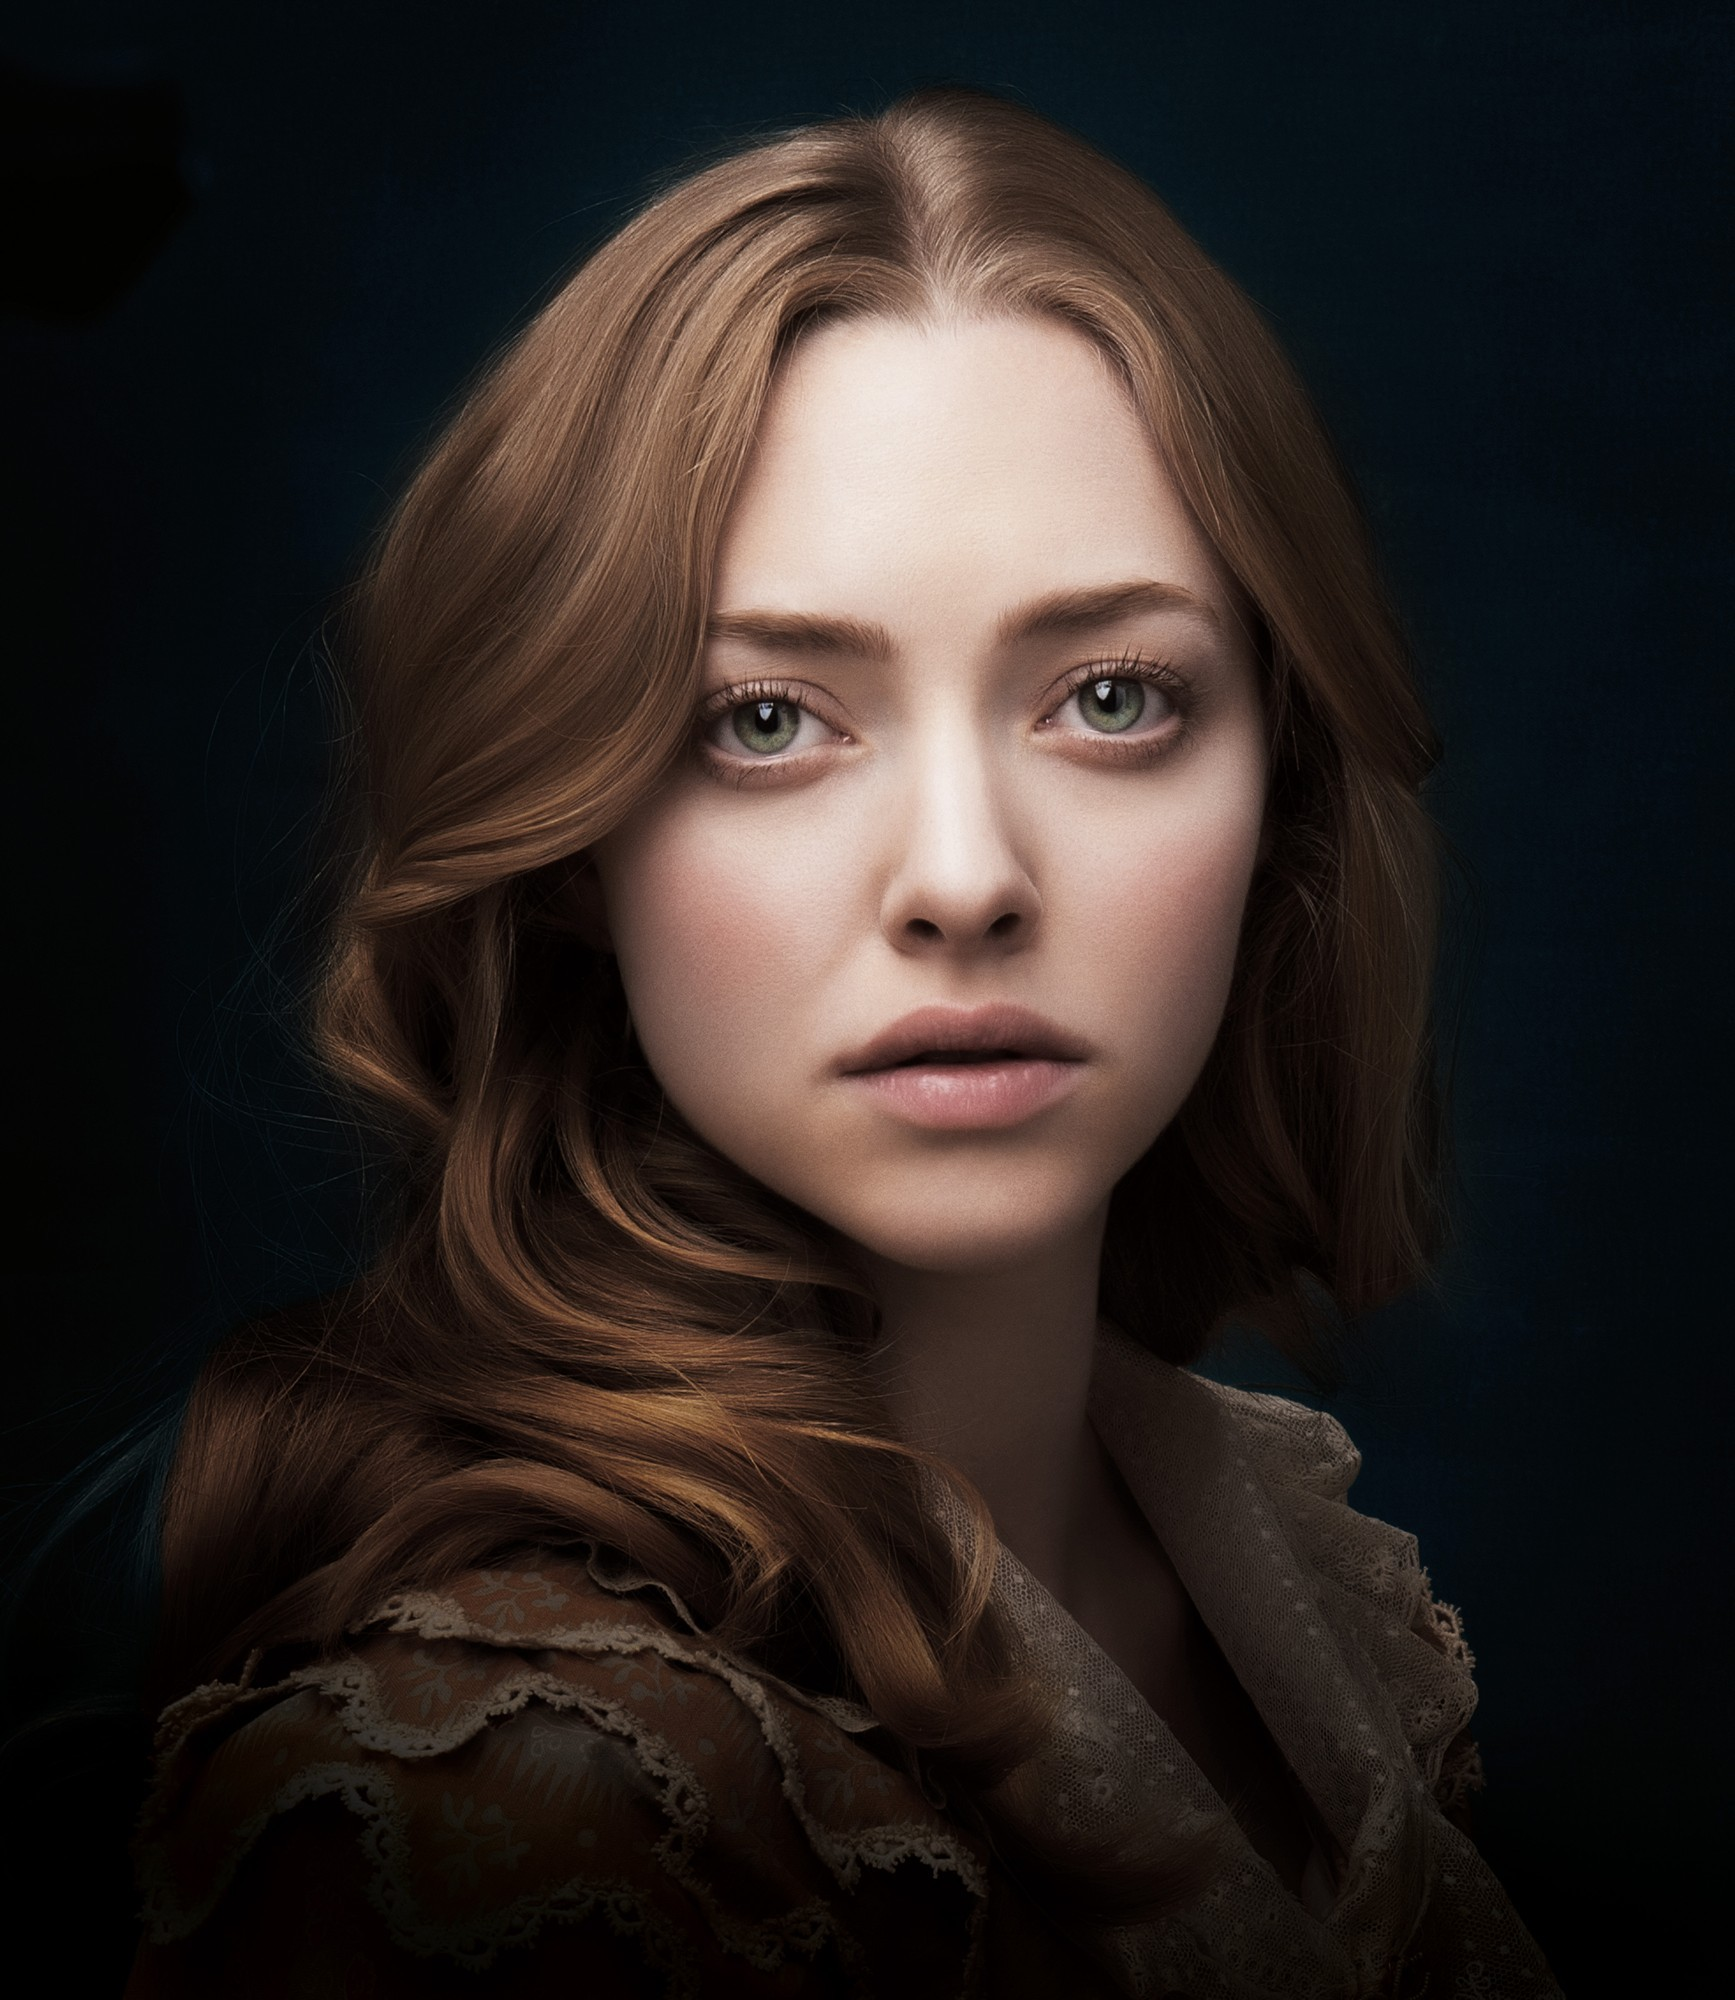 Amanda_Seyfried_as_Cosette_from_Les_Miserables_2012.jpg